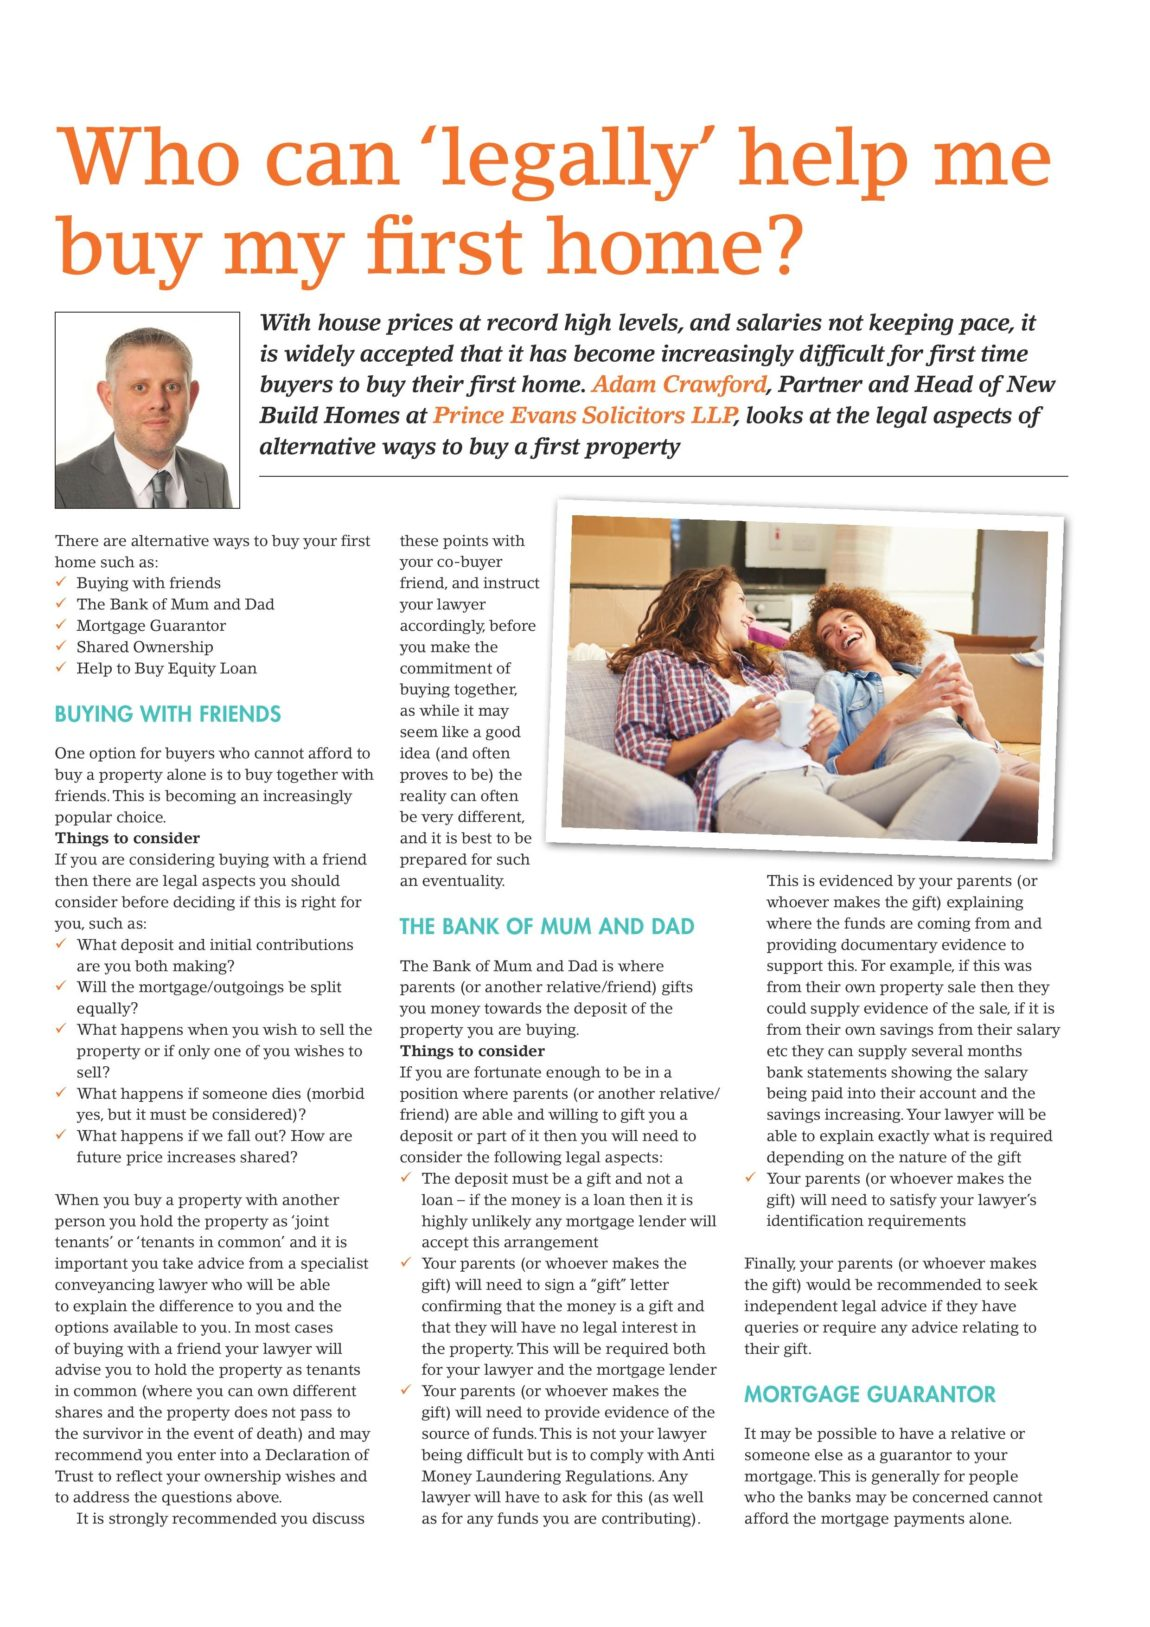 Who can 'legally' help me buy my first home?